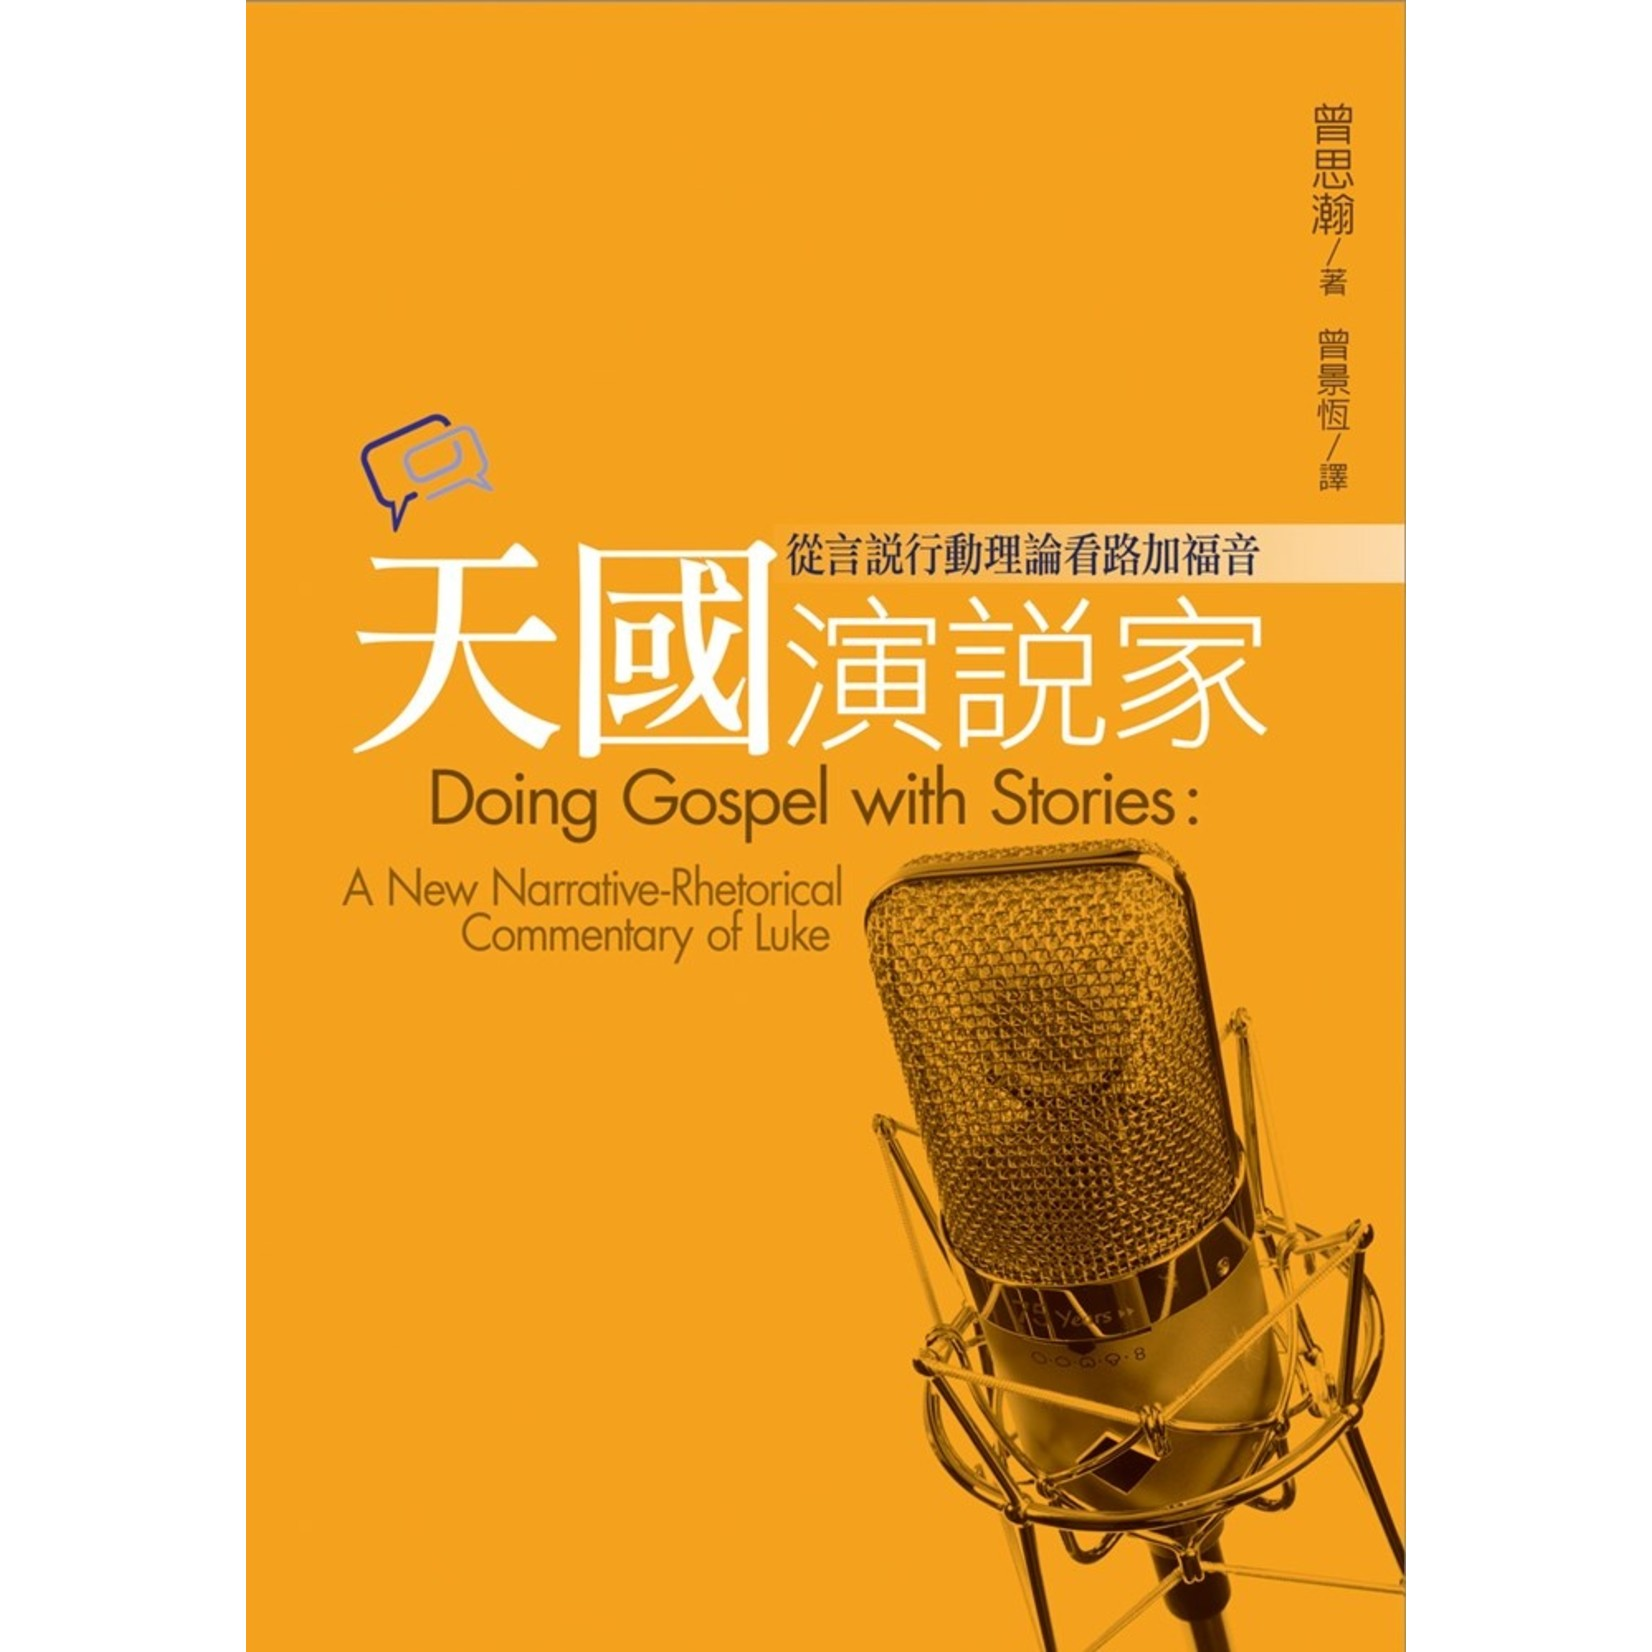 校園書房 Campus Books 天國演說家:從言說行動理論看路加福音 Doing Gospel with Stories: A New Narrative-Rhetorical Commentary of Luke